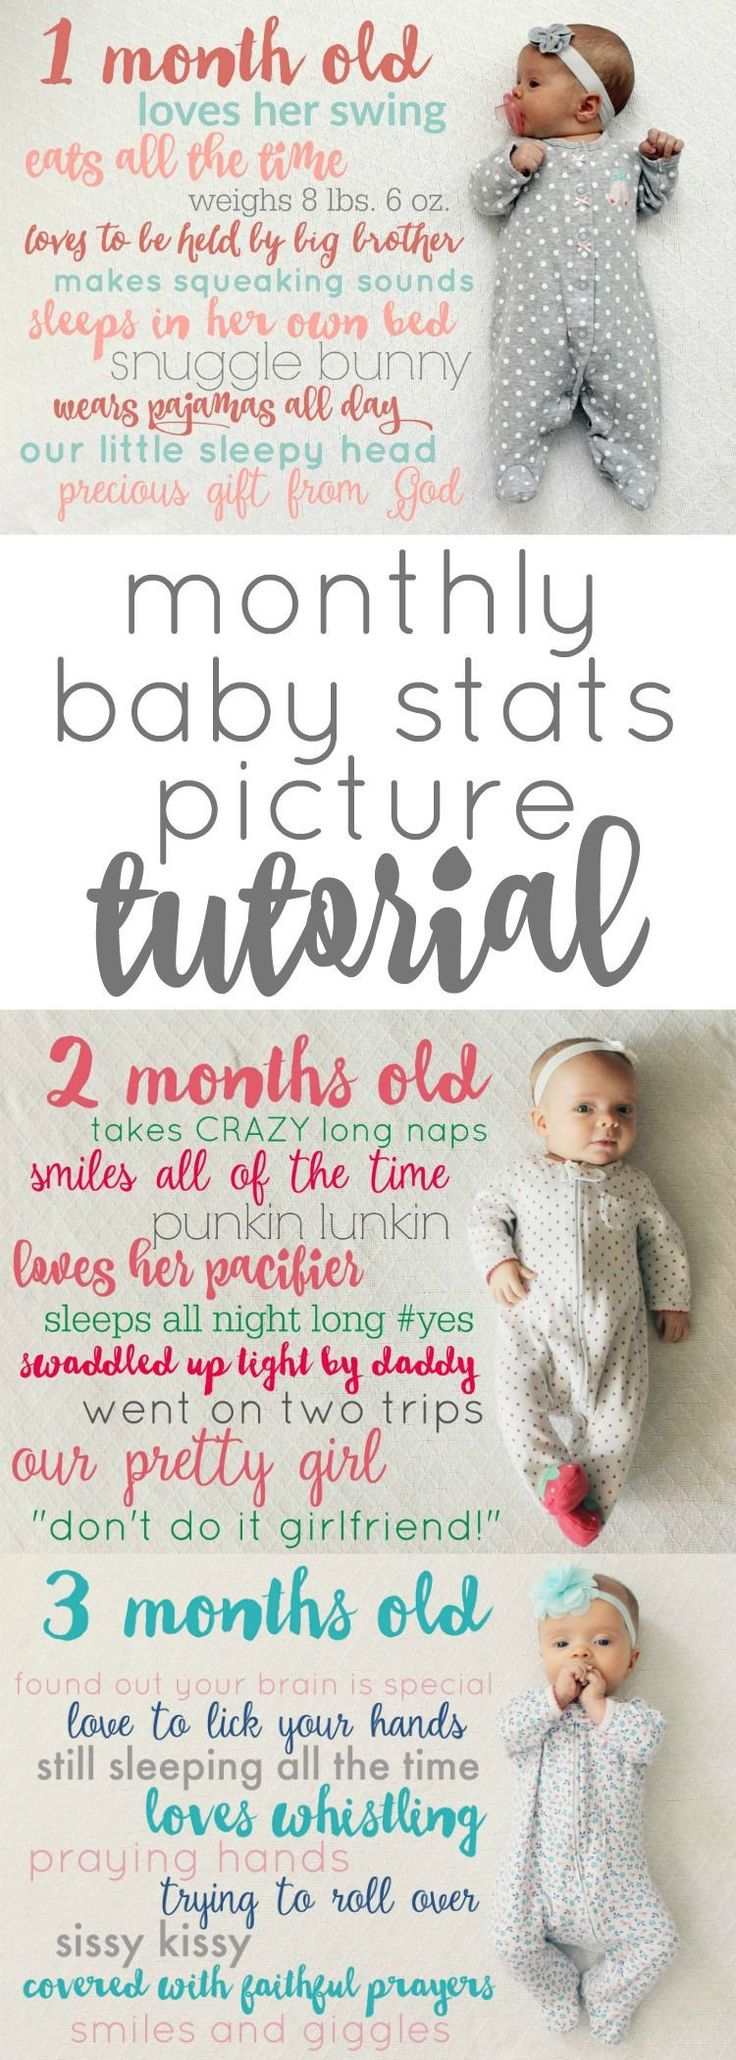 Monthly Baby Stats Picture Tutorial